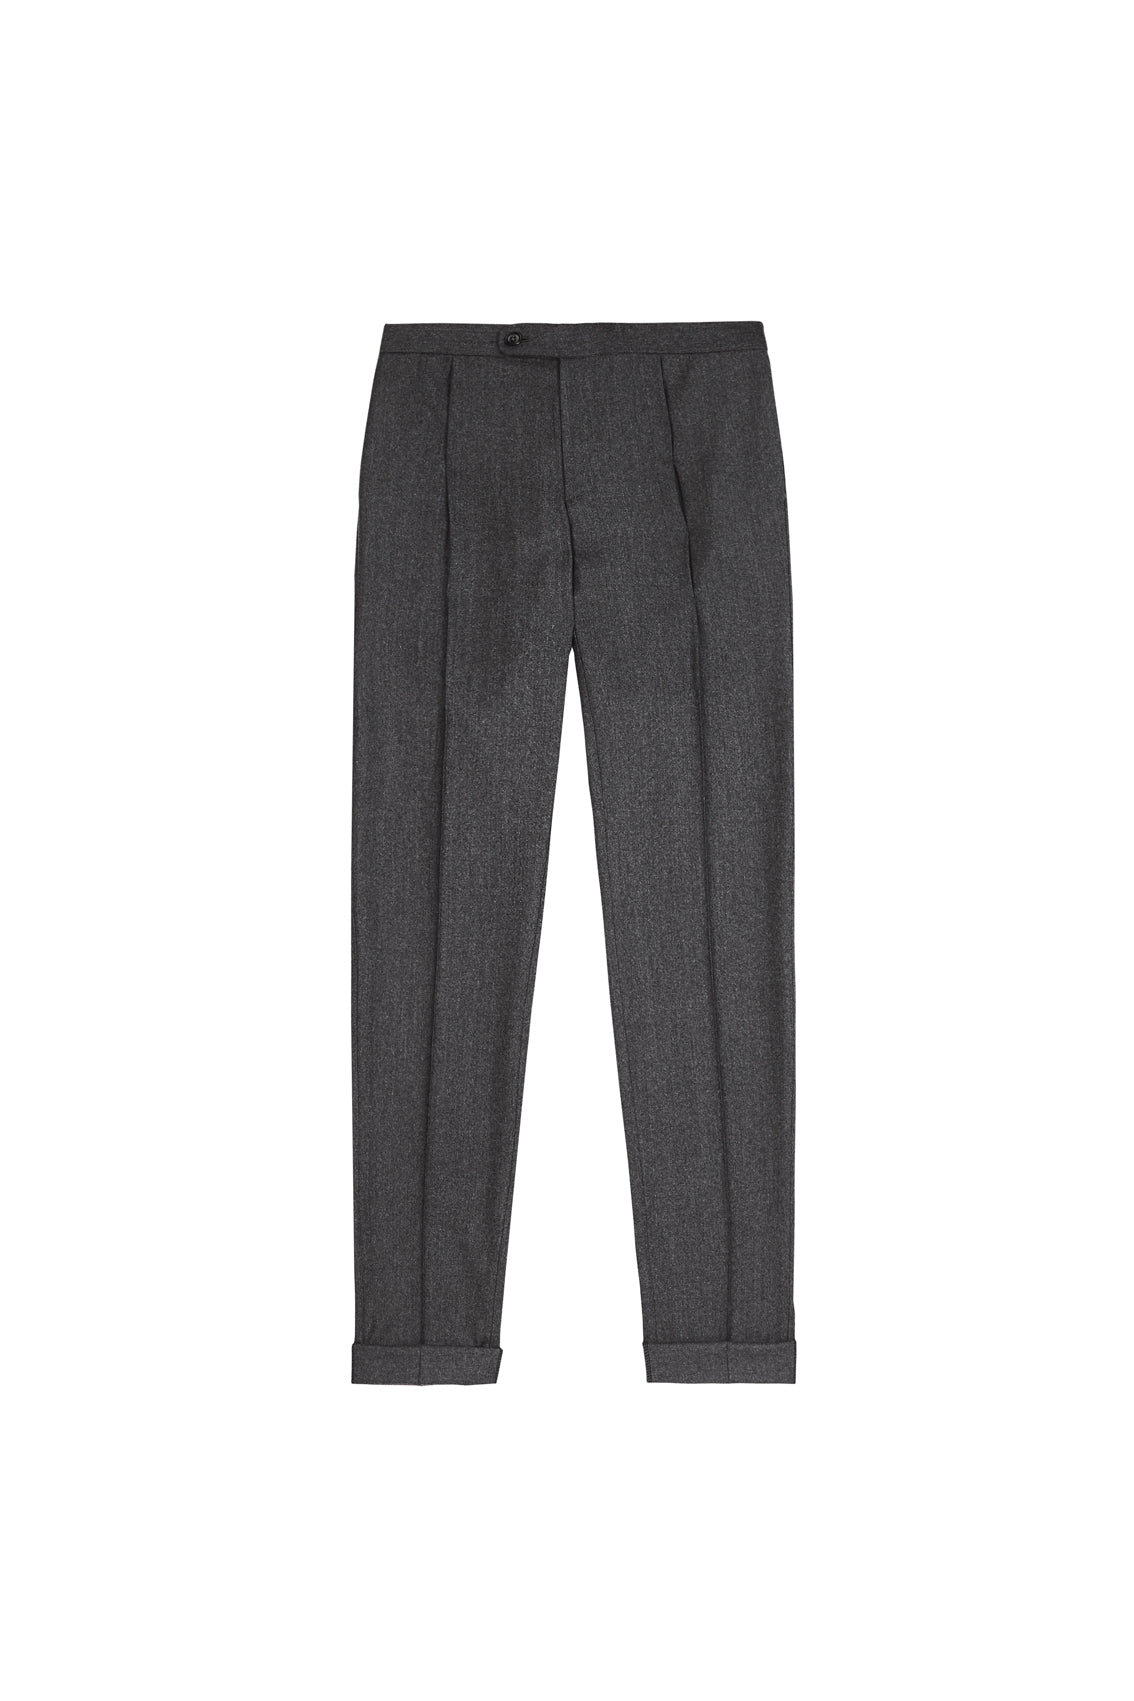 Grey Merino Cashmere Drawstring Trousers